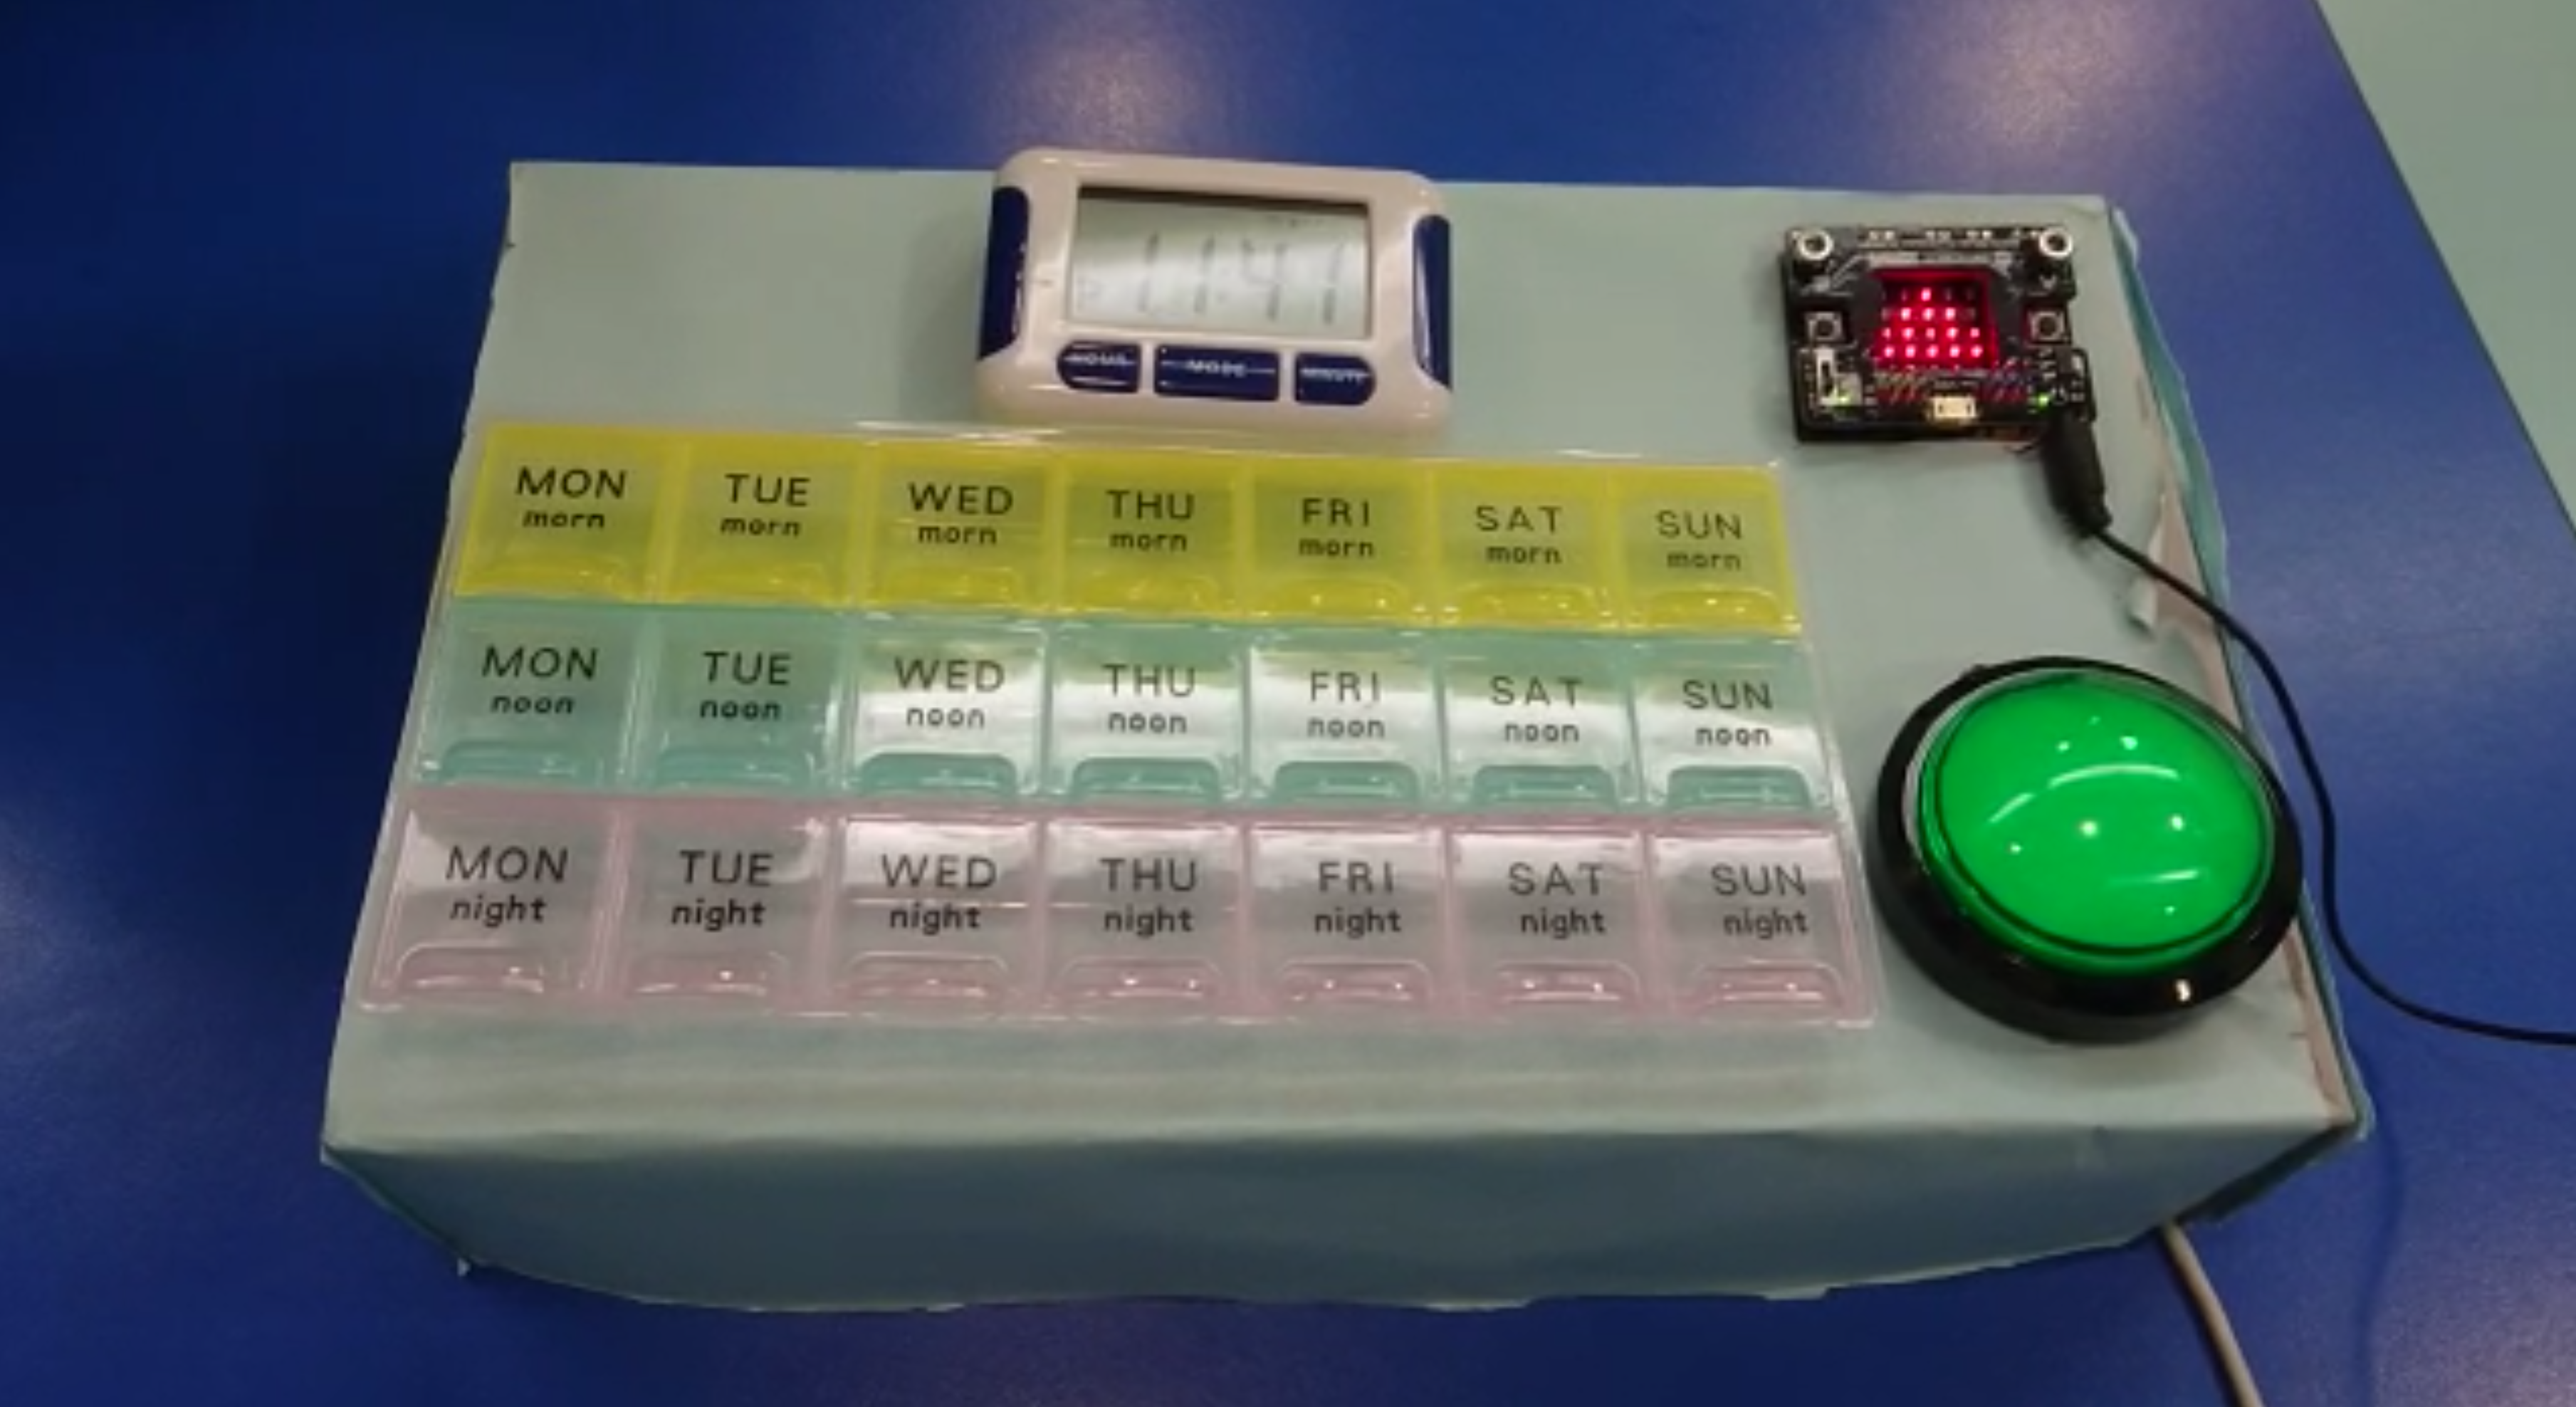 BBC micro-bit electronic pill-box for the Salvation Army Tuen Mun integrated service for young people 2